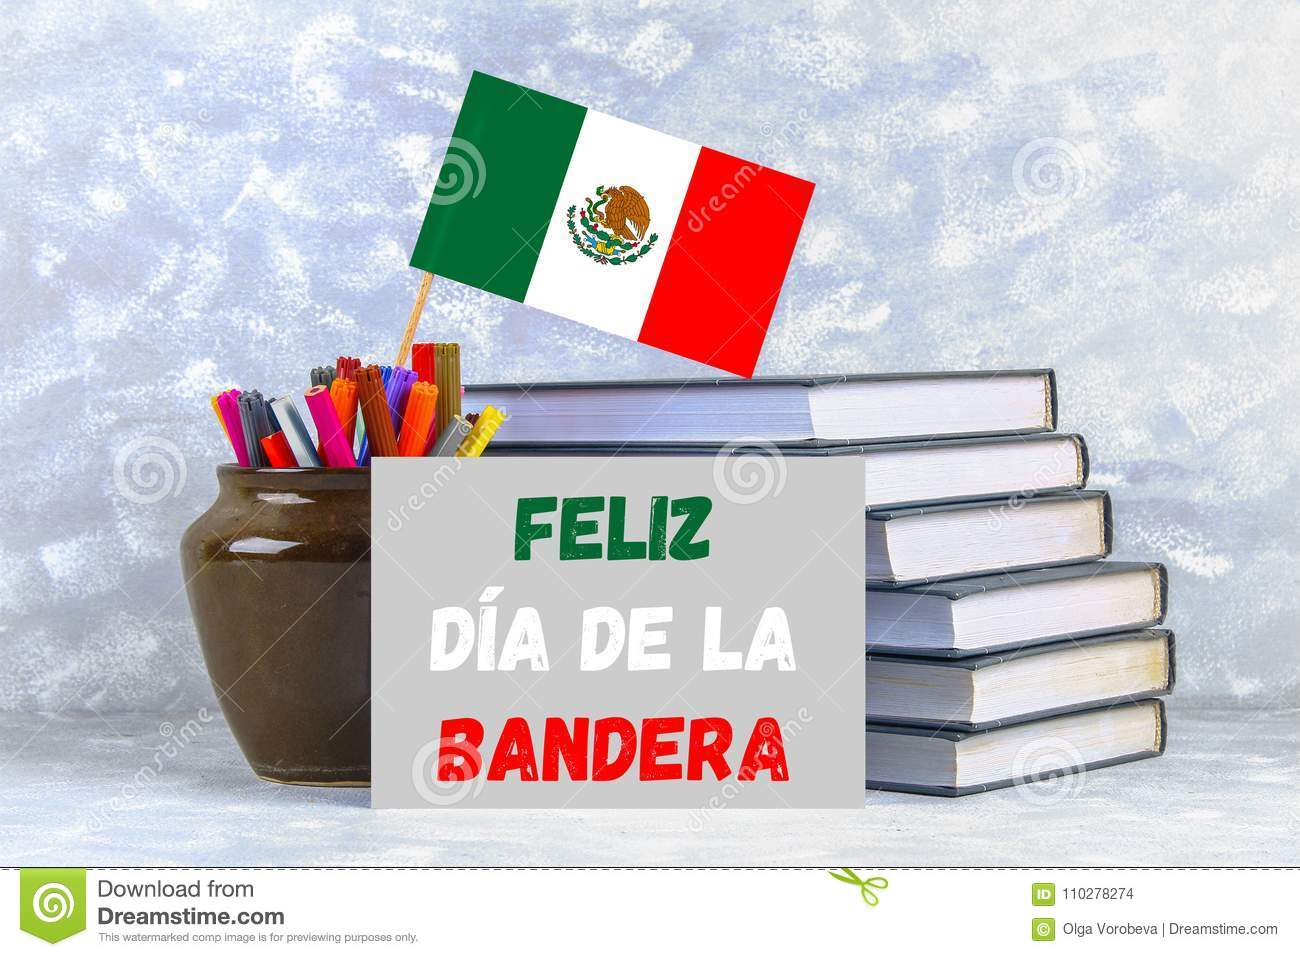 Text in Spanish: Happy day of the flag. Books with the flag of Mexico.